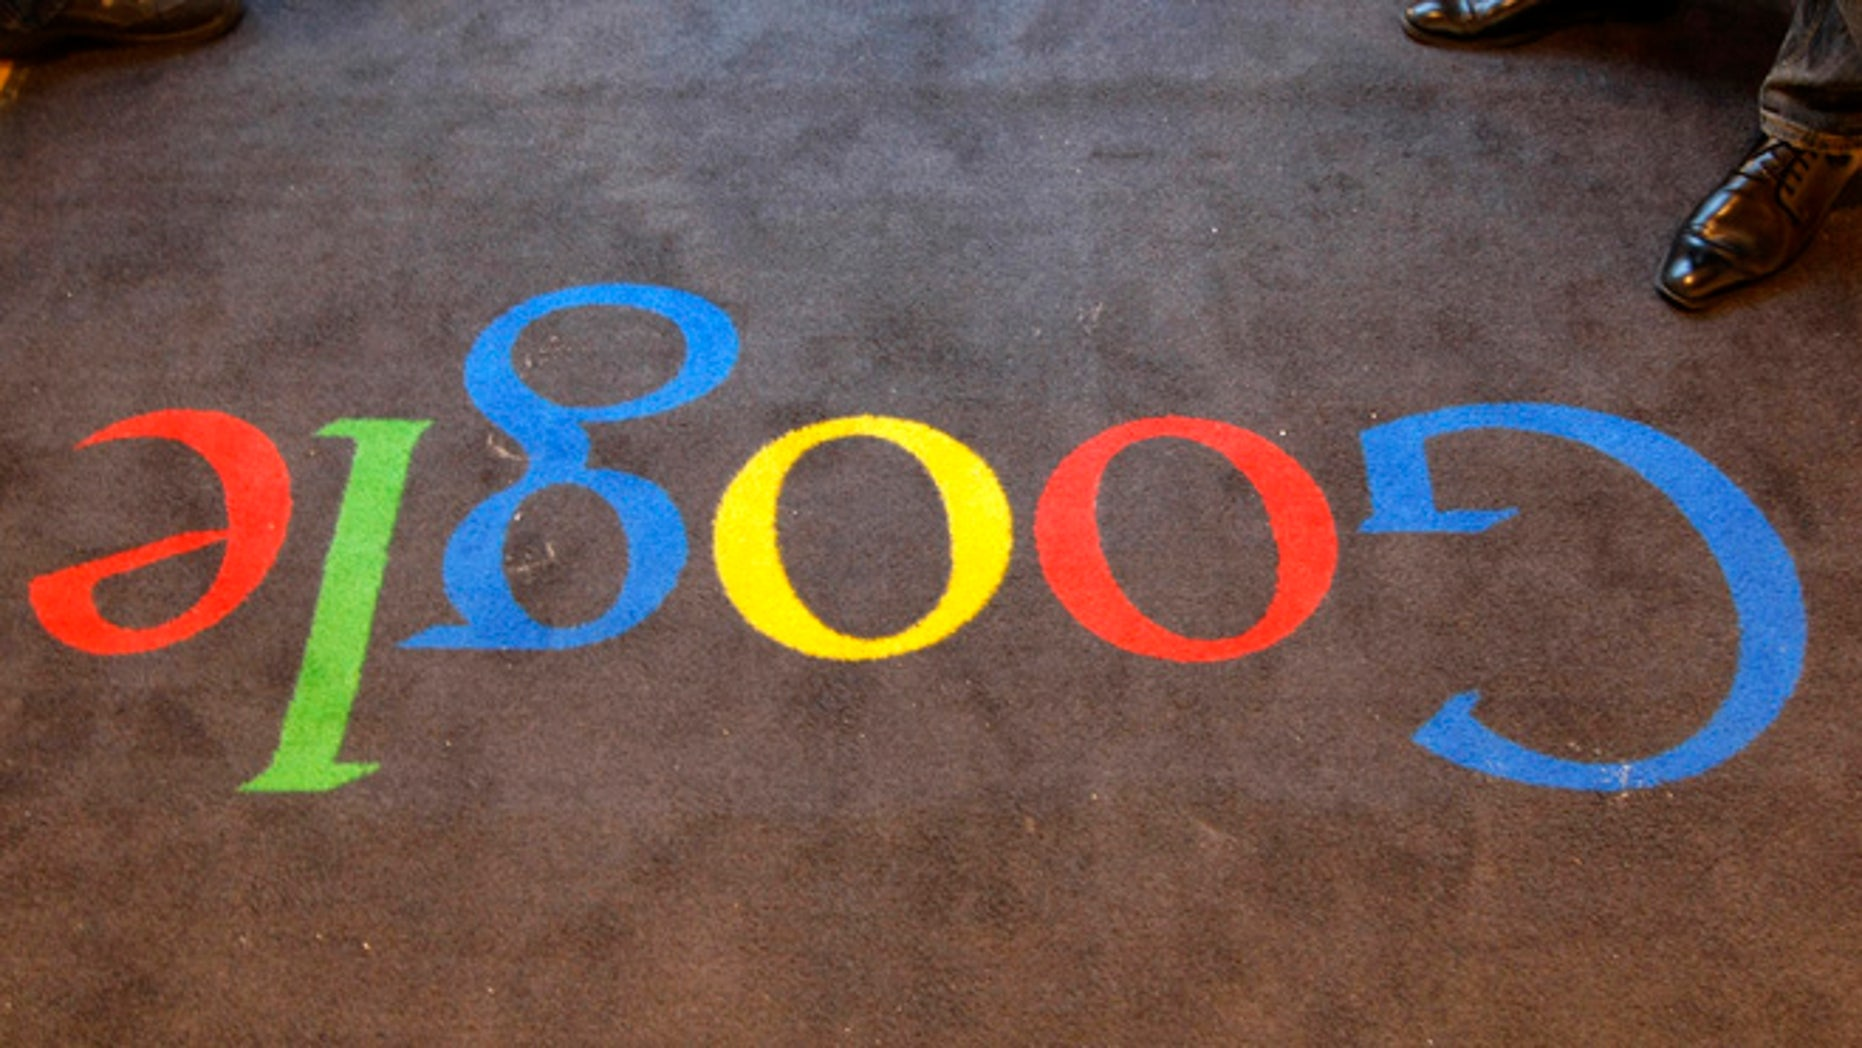 France is giving Google three months to abide by the country's data privacy laws or be fined.